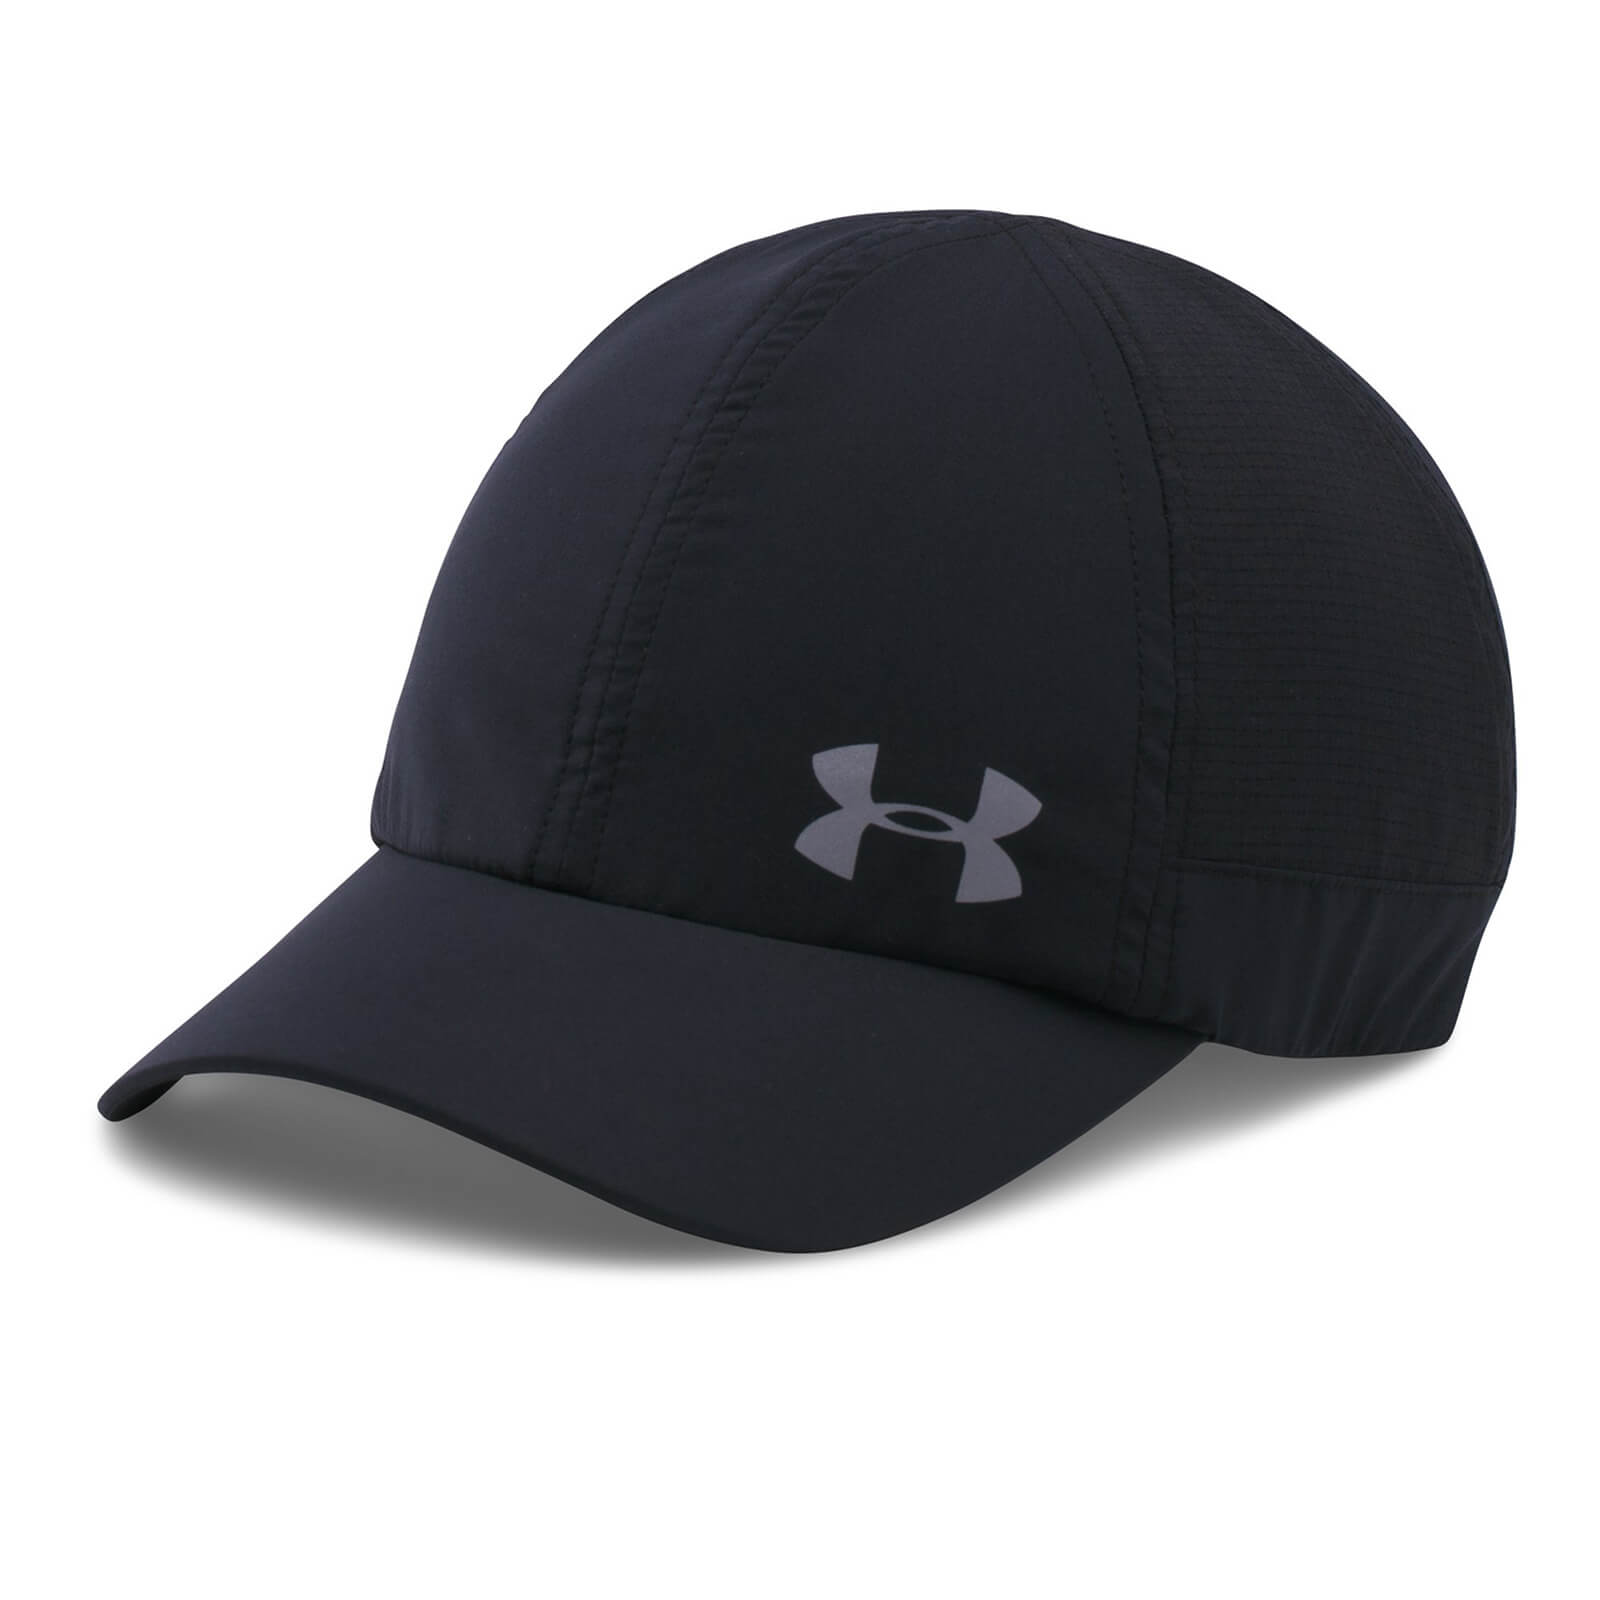 6681910f243 Under Armour Women s Fly Fast Cap - Black Silver